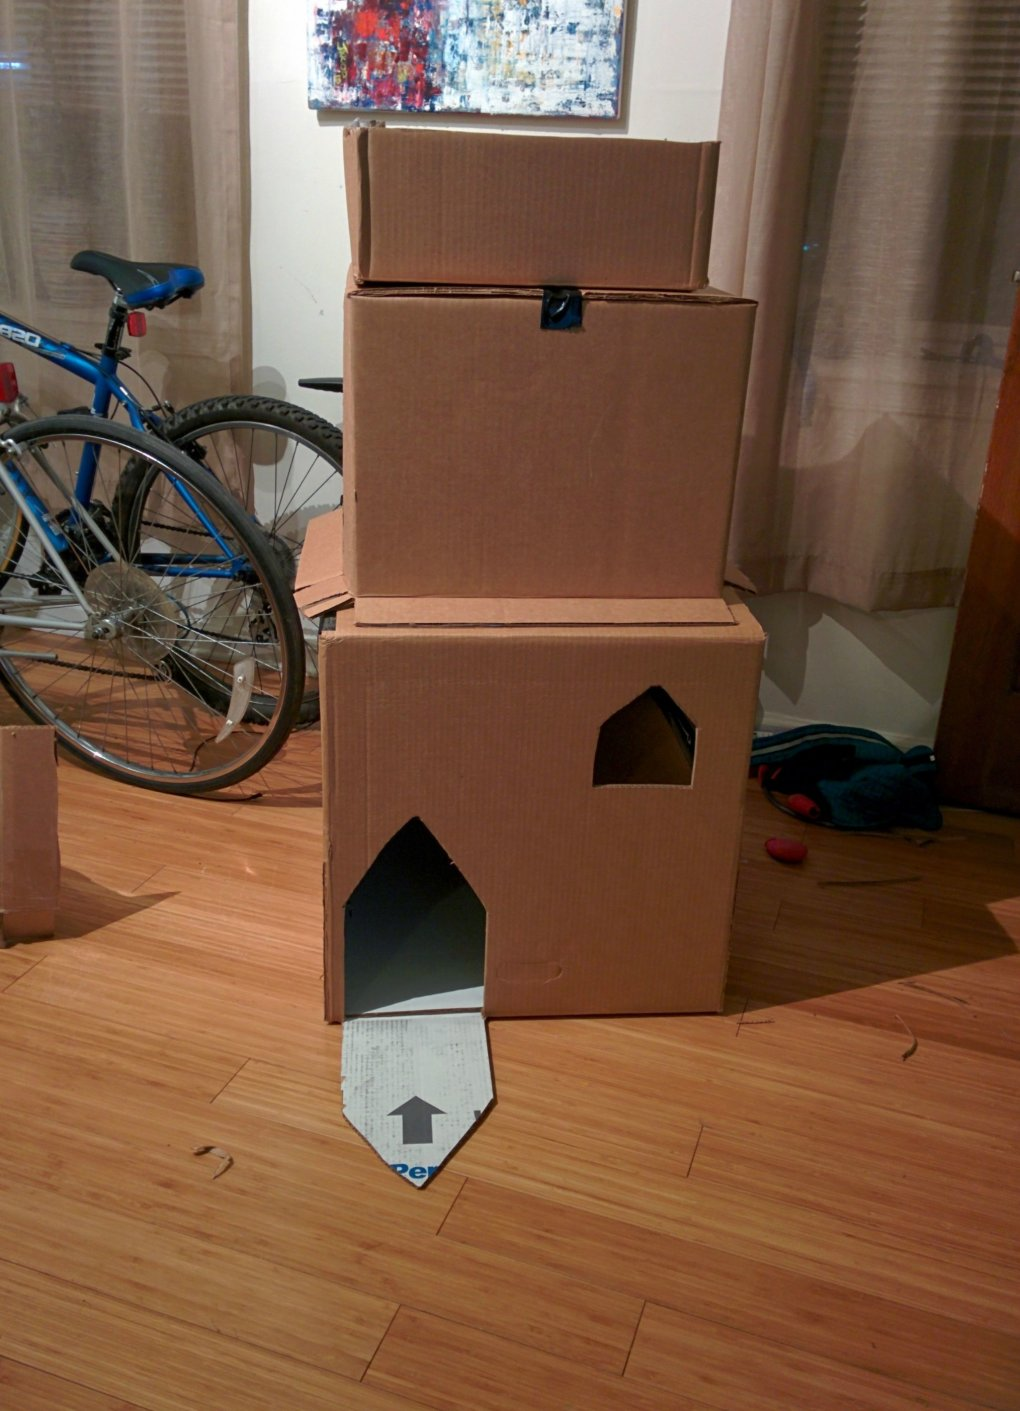 2koaqvy - why don't we build cardboard castle to our cats? this is how to do it.